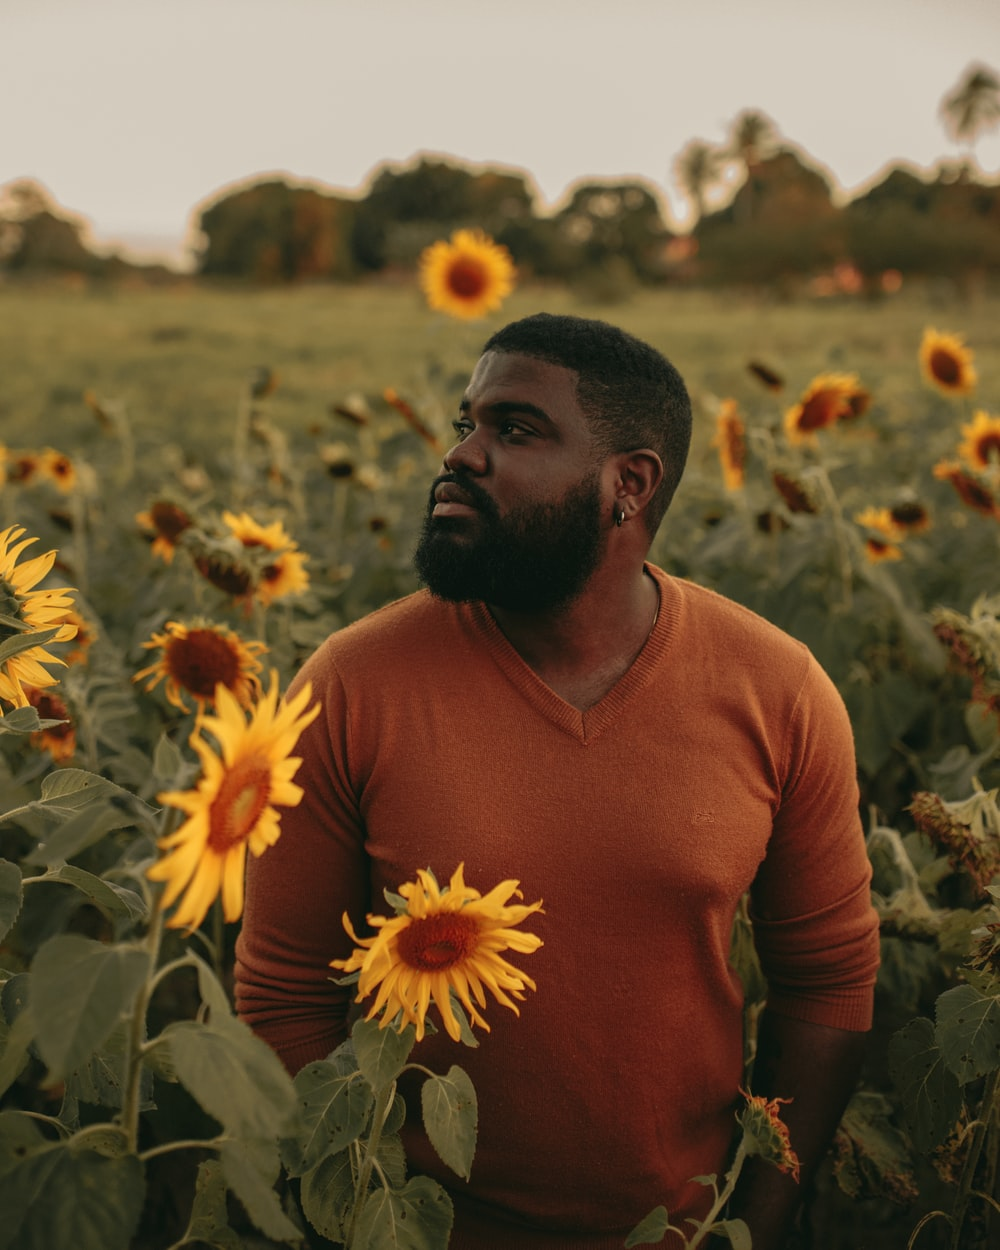 man in brown shirt standing on sunflower field